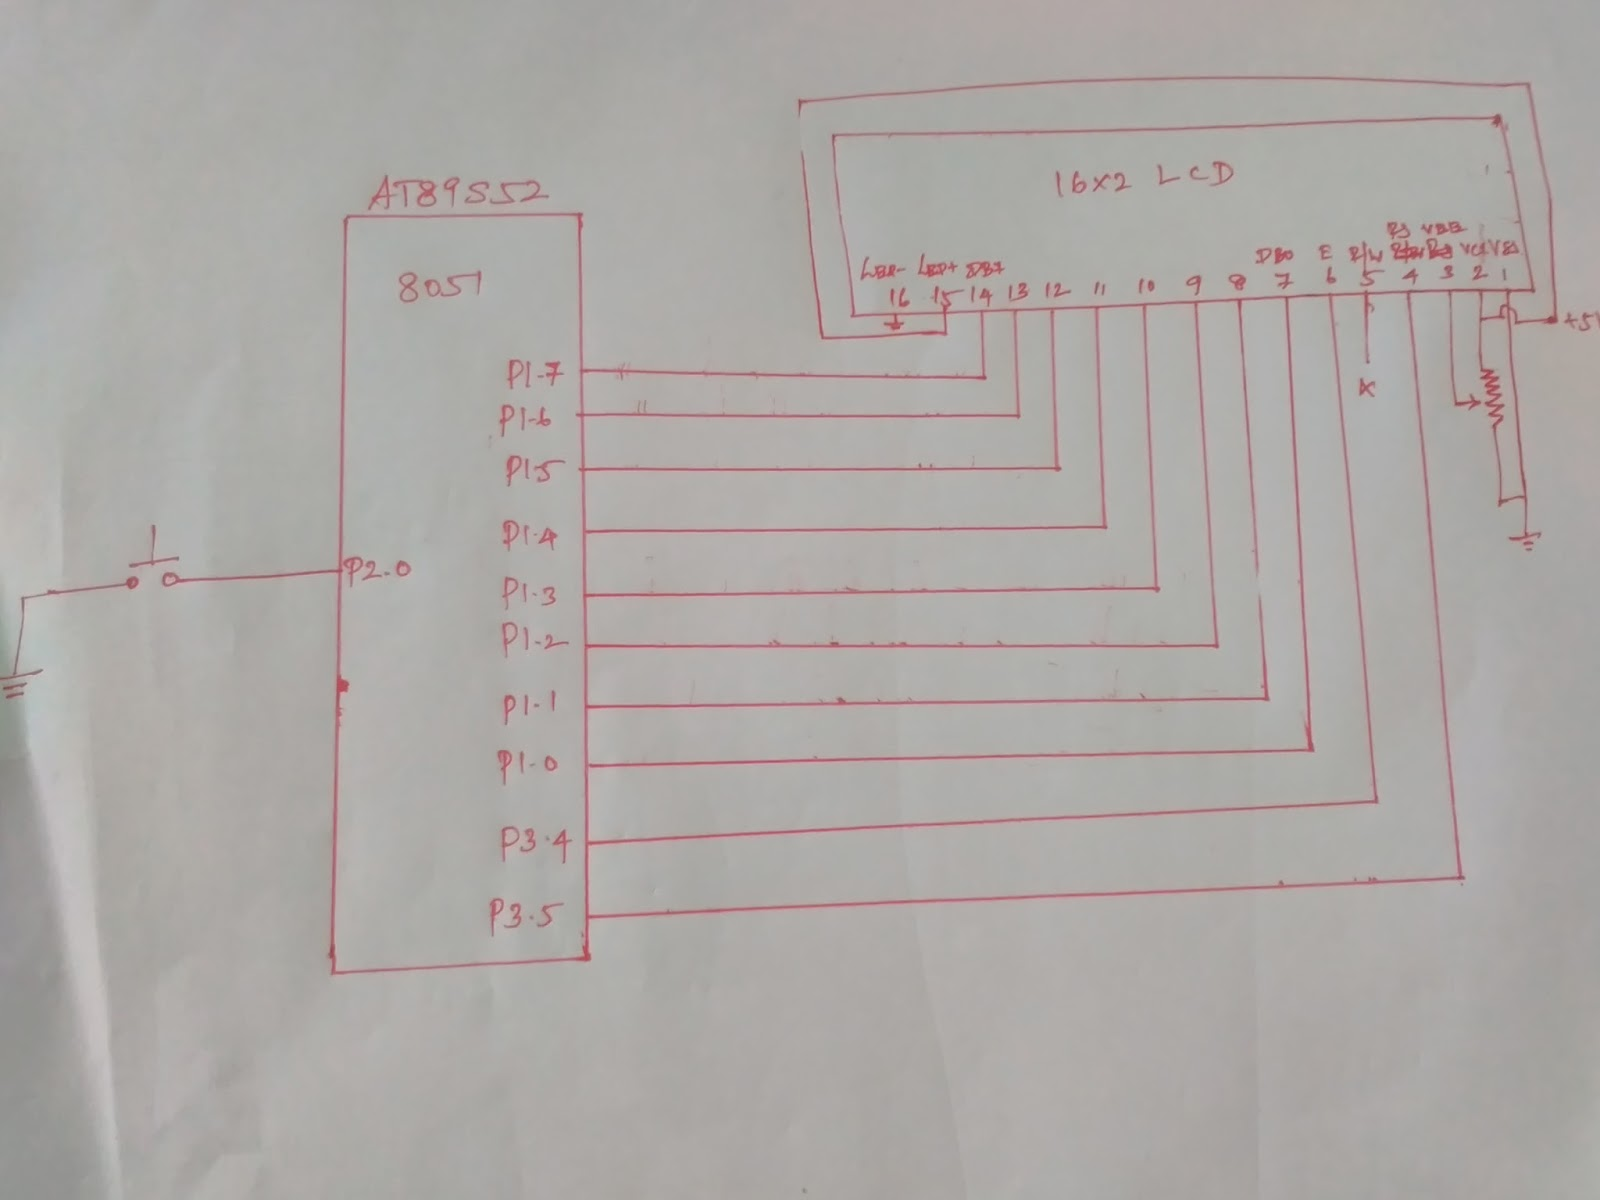 How To Interface 16x2 Lcd With 8051 Microcontroller At89c51 Of That You Need Have In Order Perform An This Topic Explains The Basics A And It Can Be Interfaced Display Character